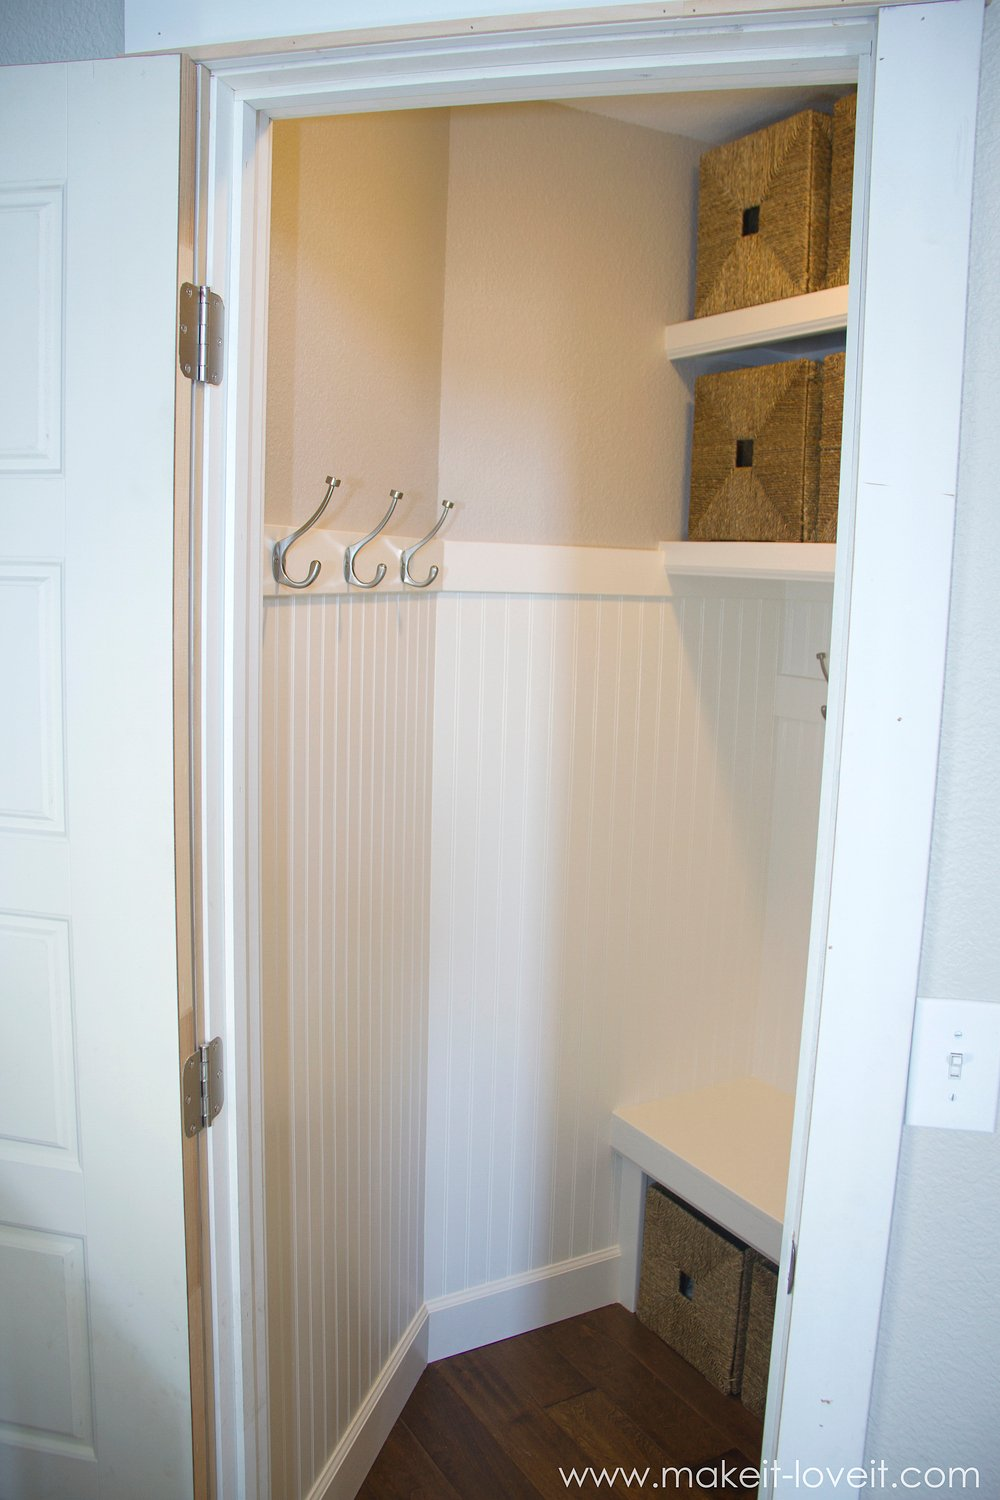 Amazing Turn A Coat Closet Into A Mudroom....with Hooks And Baskets For